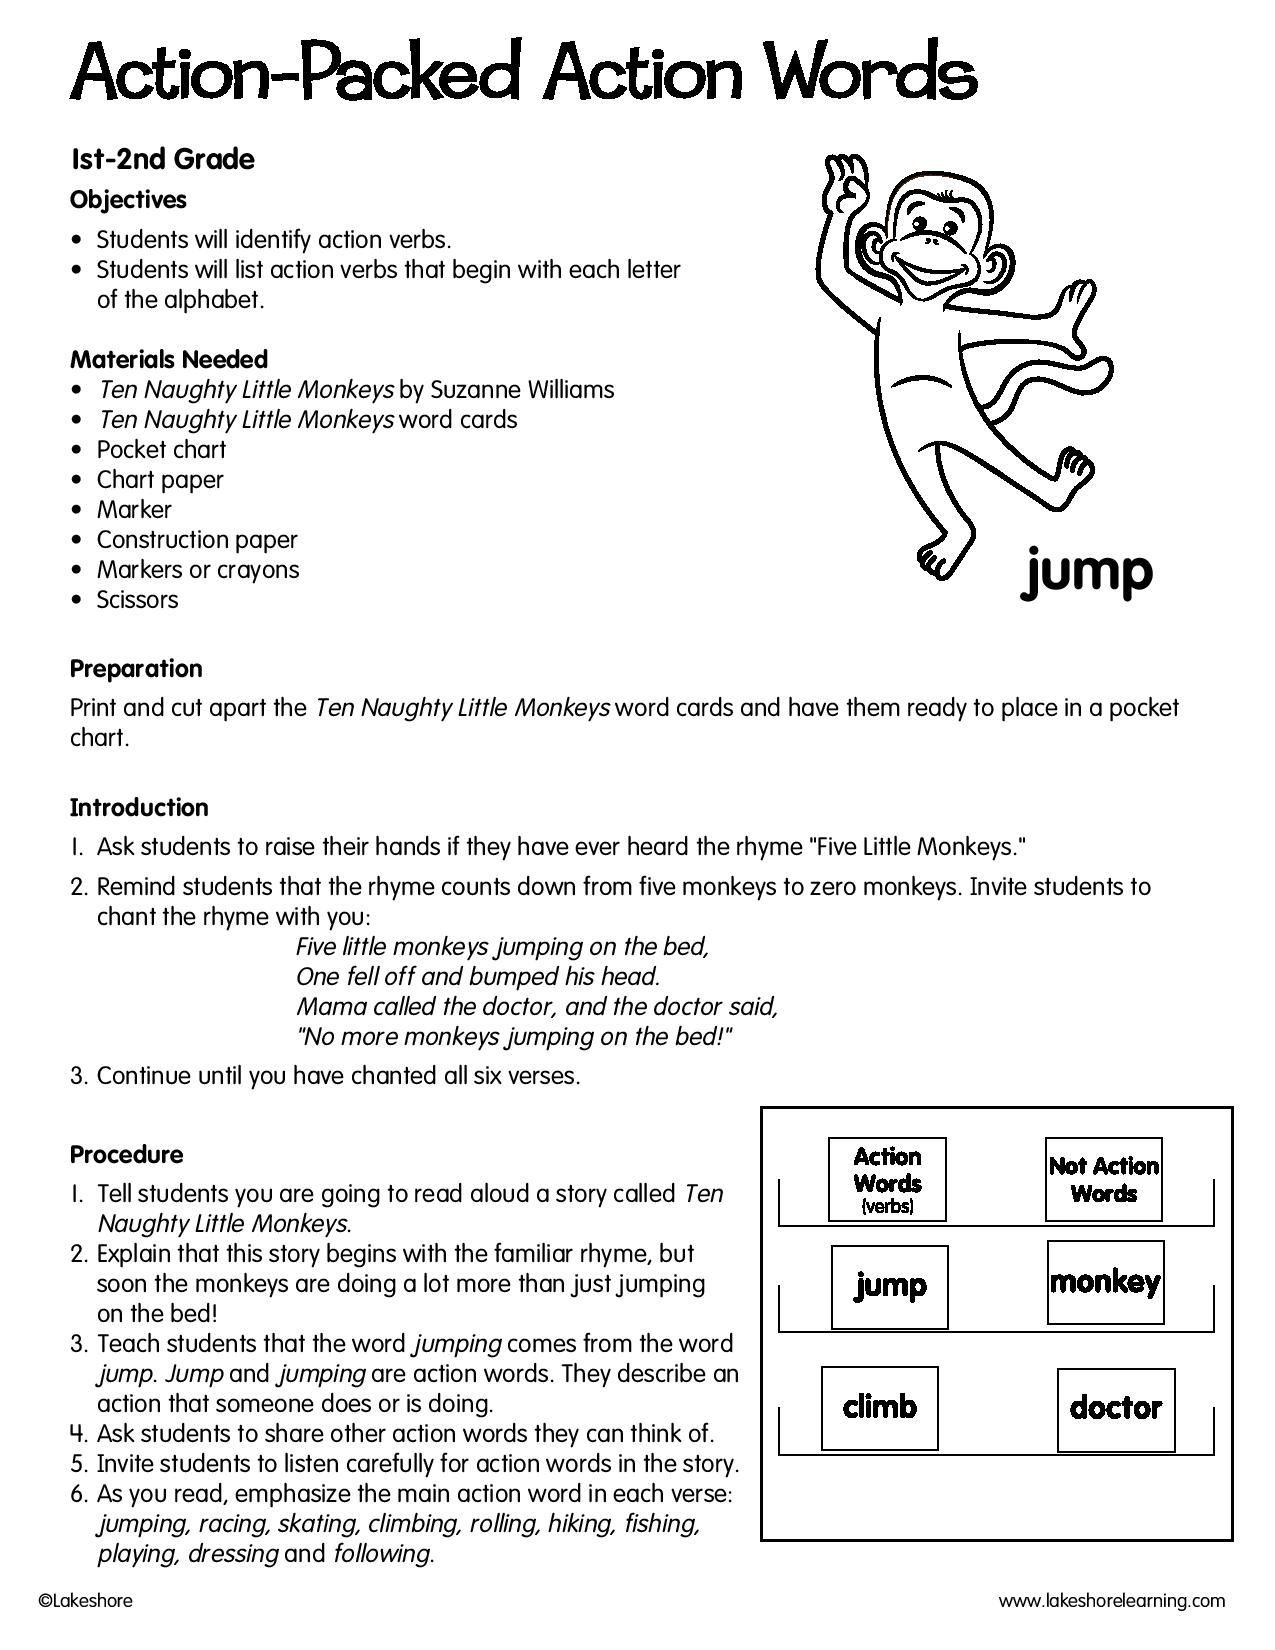 Action Packed Action Words Lessonplan Action Words Free Lesson Plans Words In 2021 Vocabulary Lesson Plans Action Words Vocabulary Lessons [ 1650 x 1275 Pixel ]